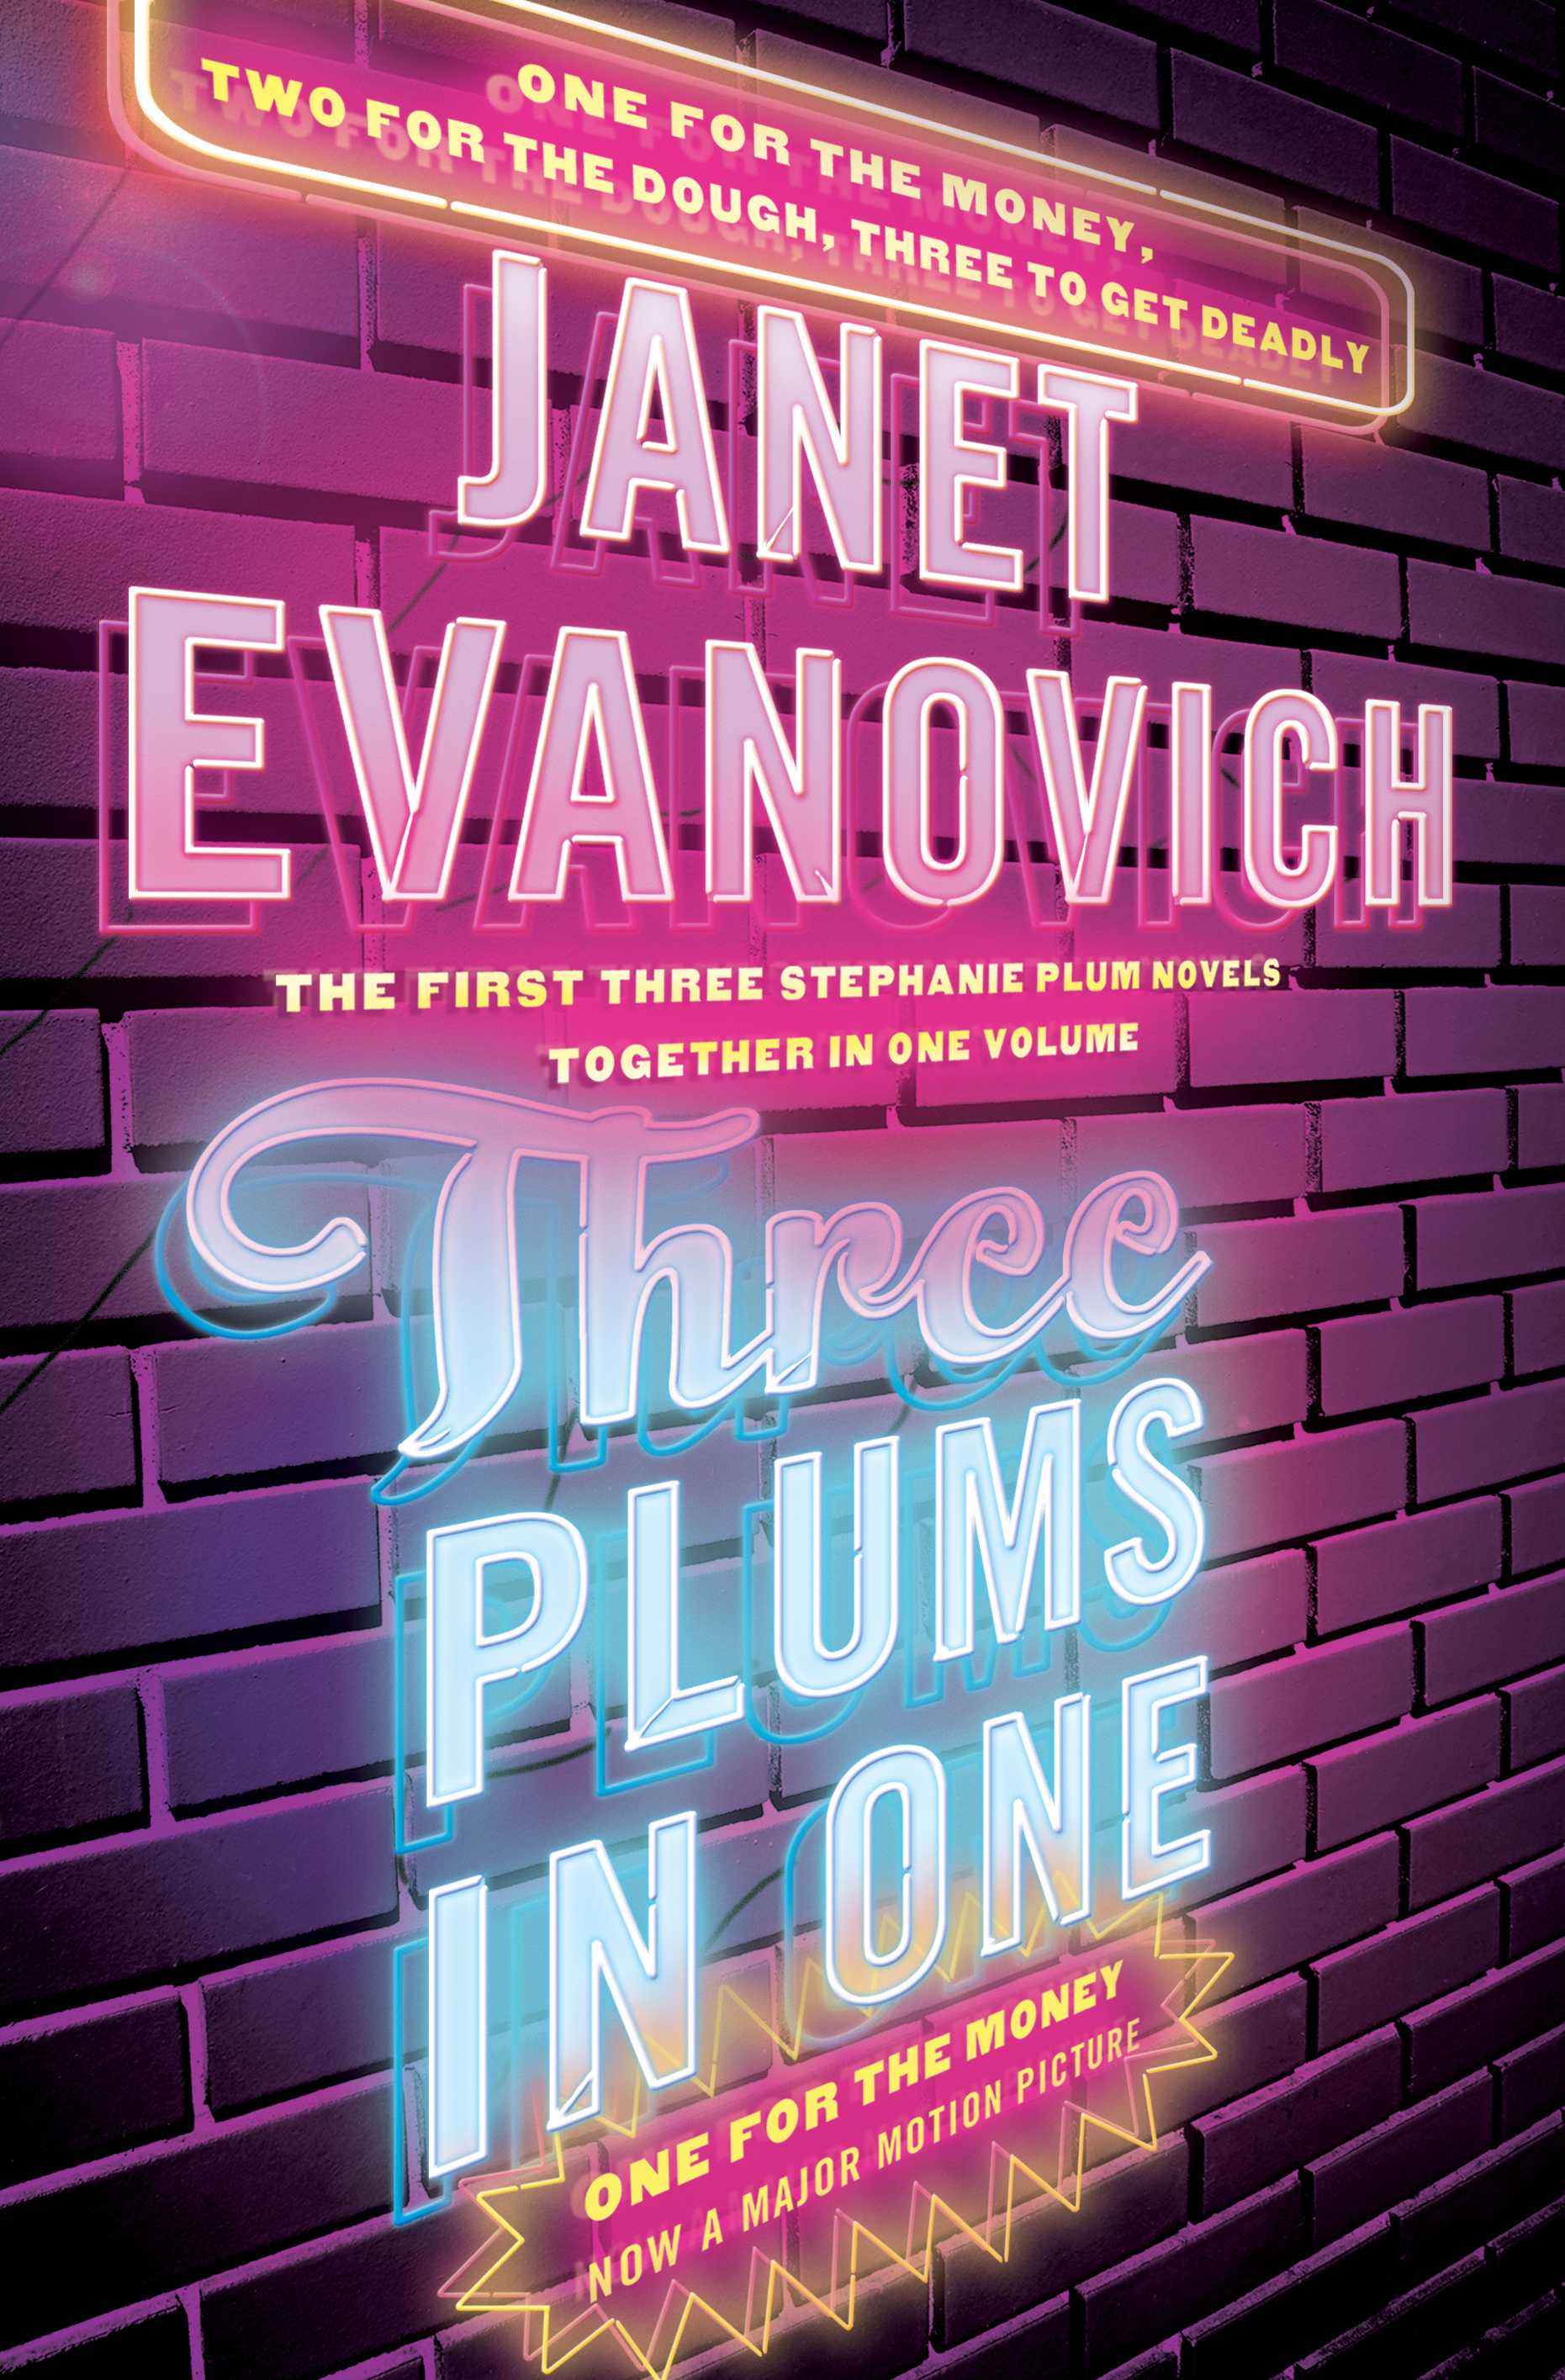 janet evanovich book list